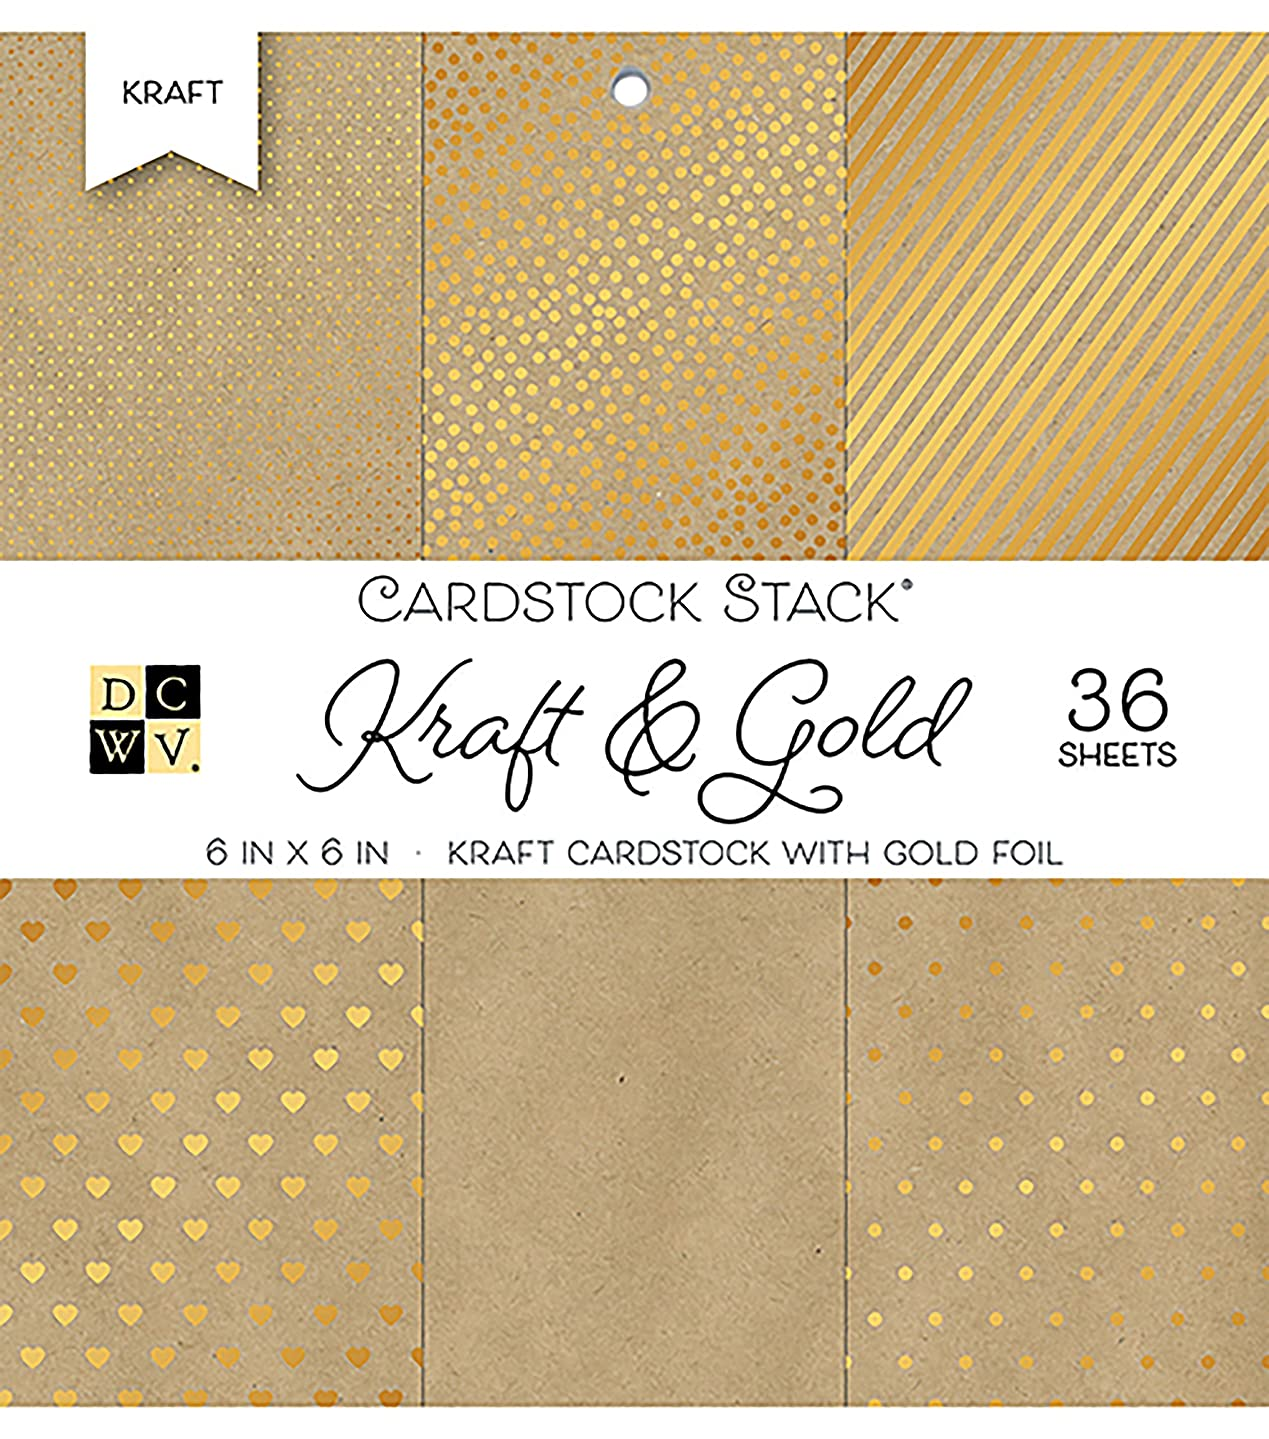 American Crafts 6 x 6 Inch Kraft & Gold 36 Sheets Die Cuts with a View Mat Stacks, 6